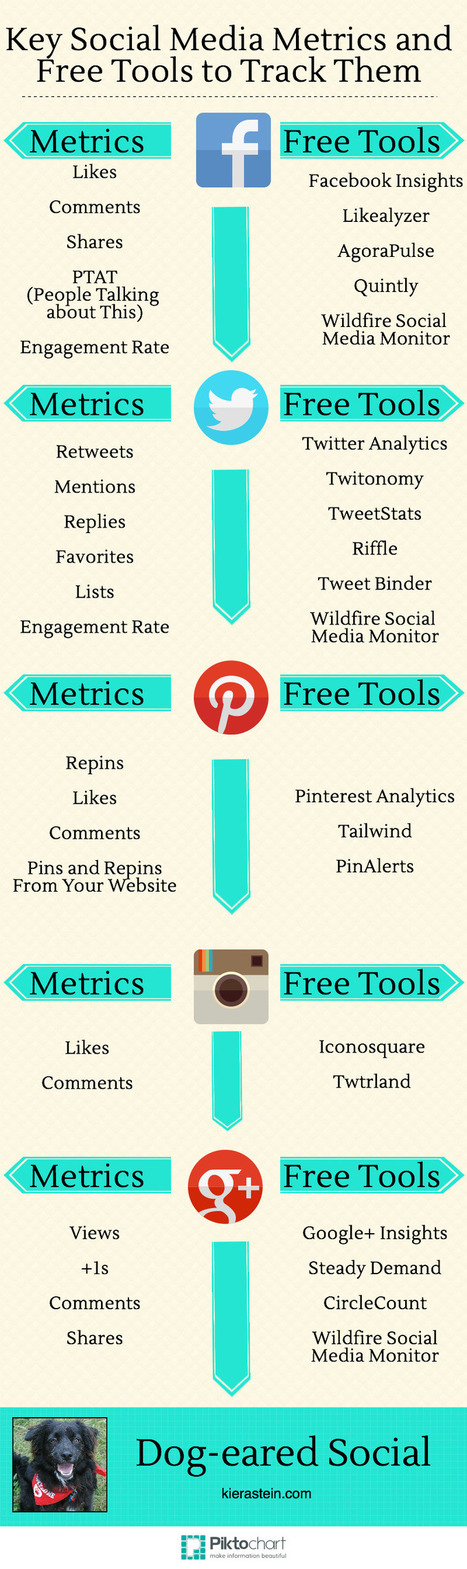 Infographic: Key social media metrics and free tools to track them | ANALYZING EDUCATIONAL TECHNOLOGY | Scoop.it